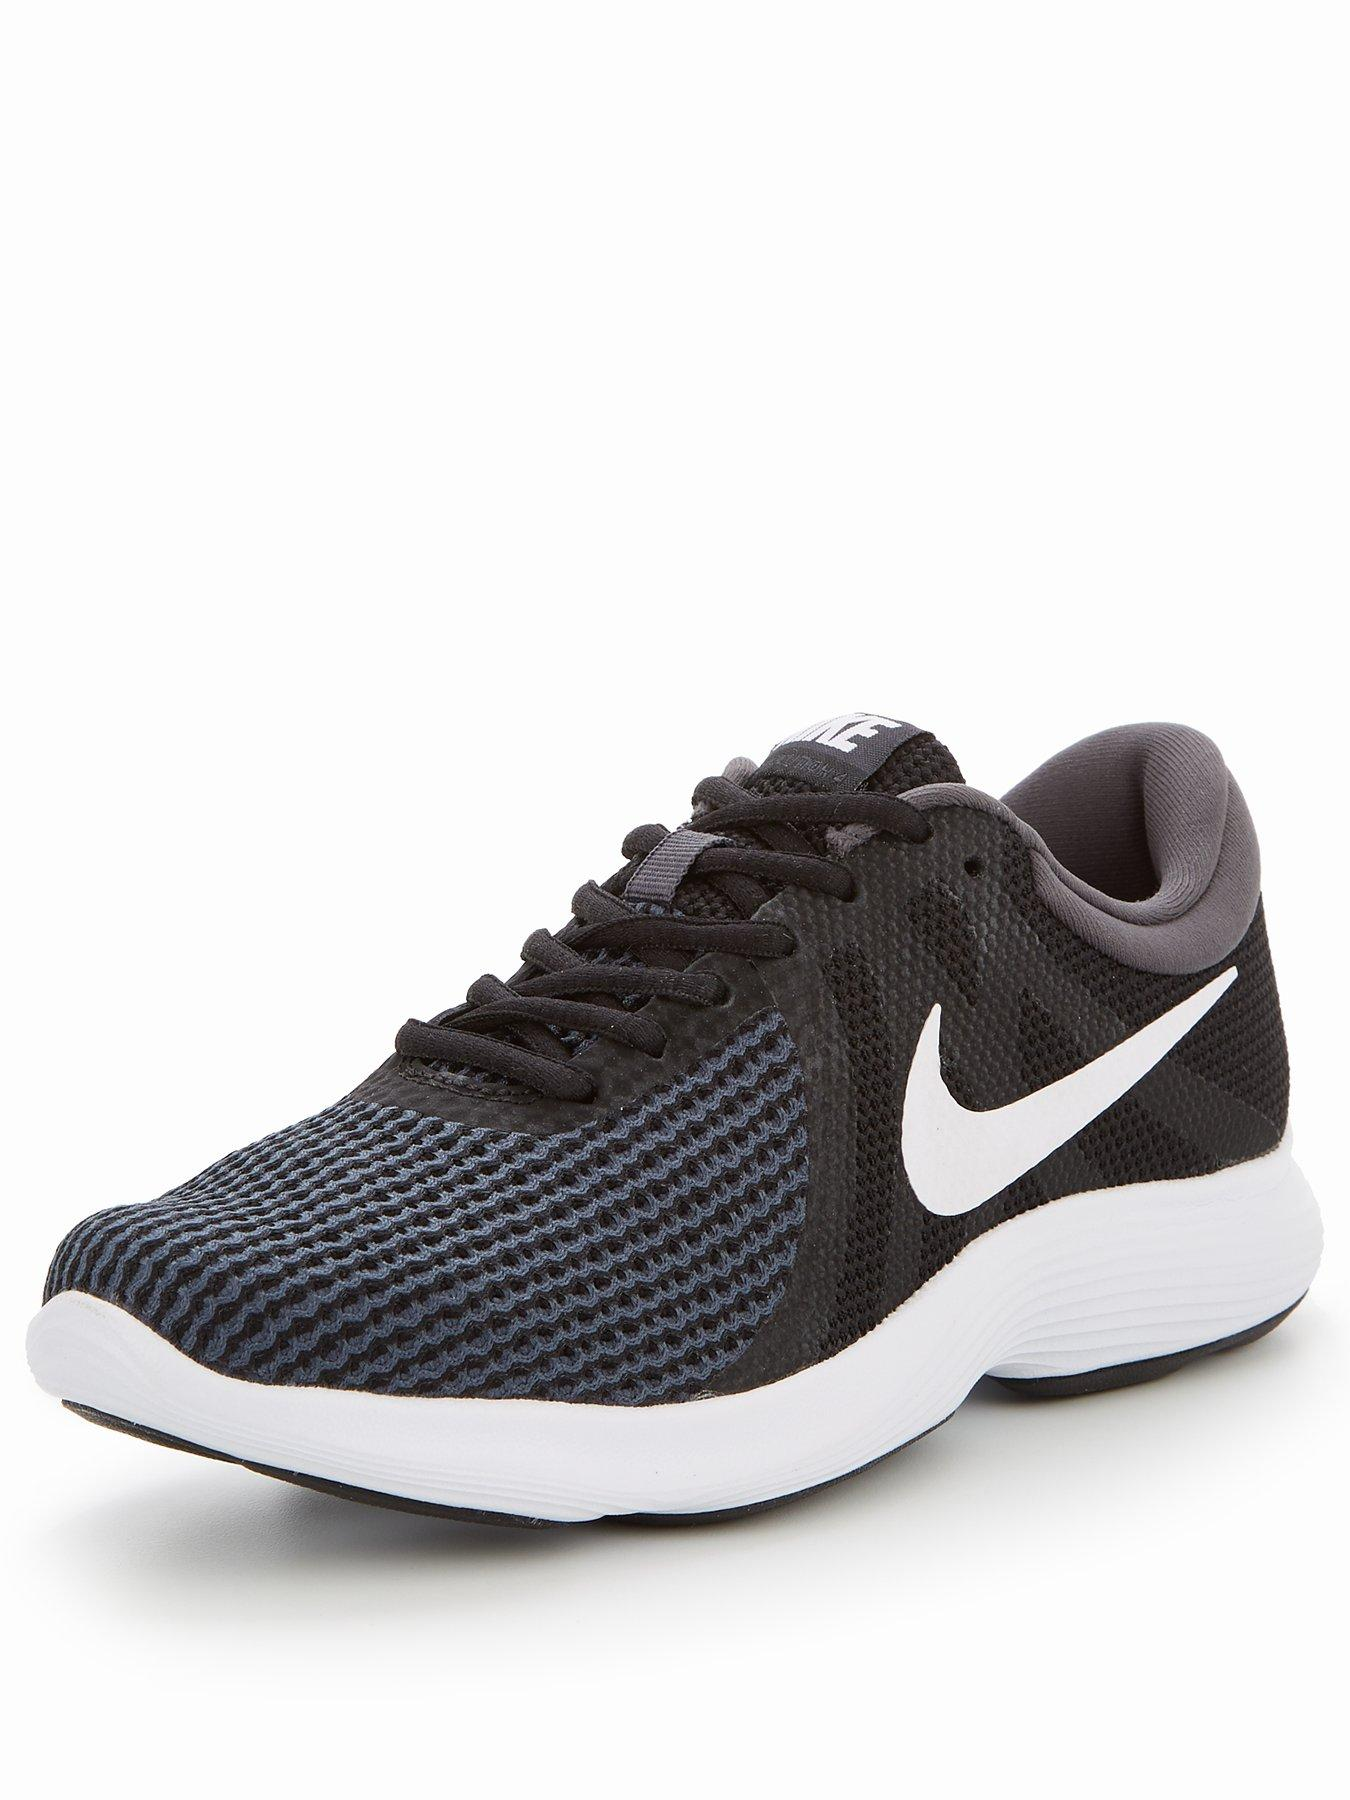 3110f20268 ... wholesale nike revolution 4 black white 8075e 7186c ...